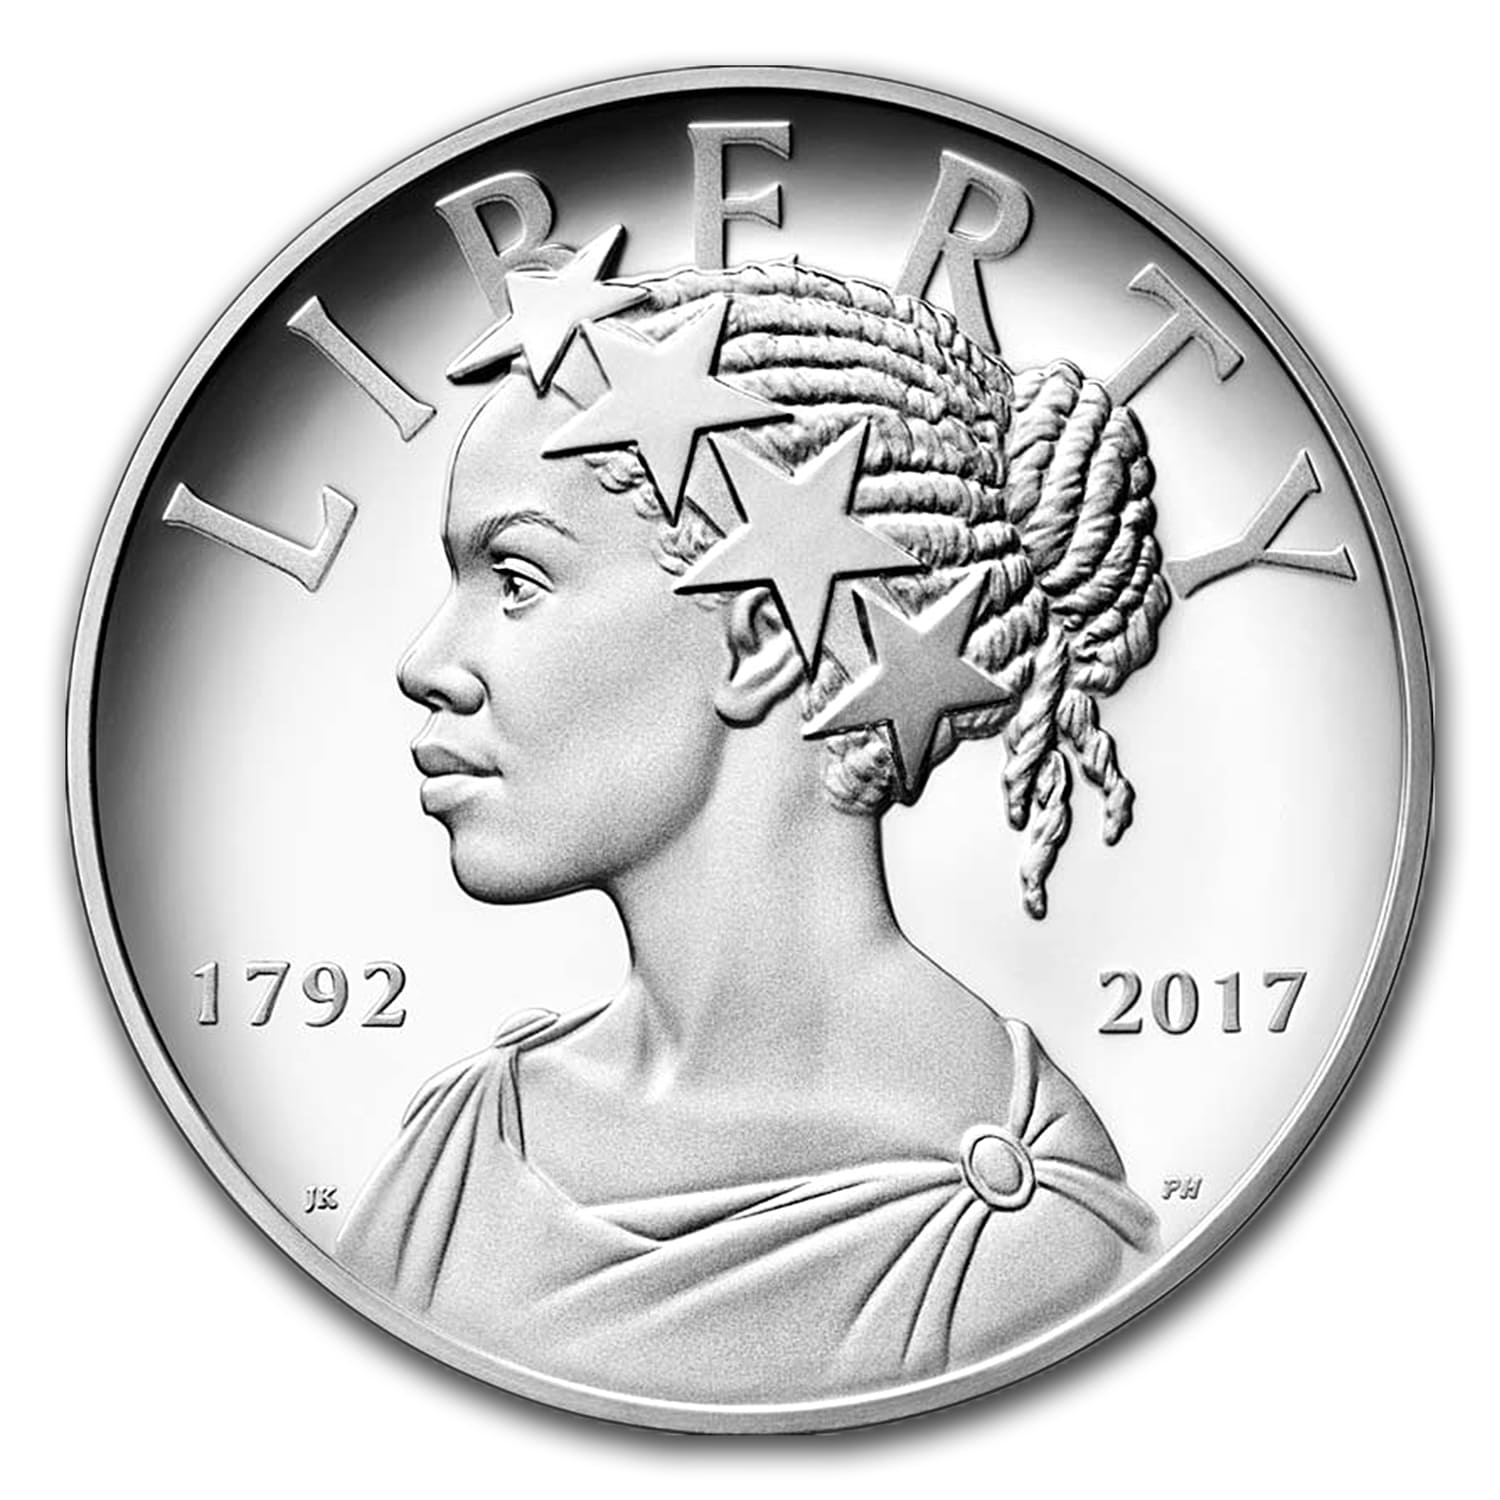 2017-P American Liberty Silver Medal Proof (w/Box & COA)